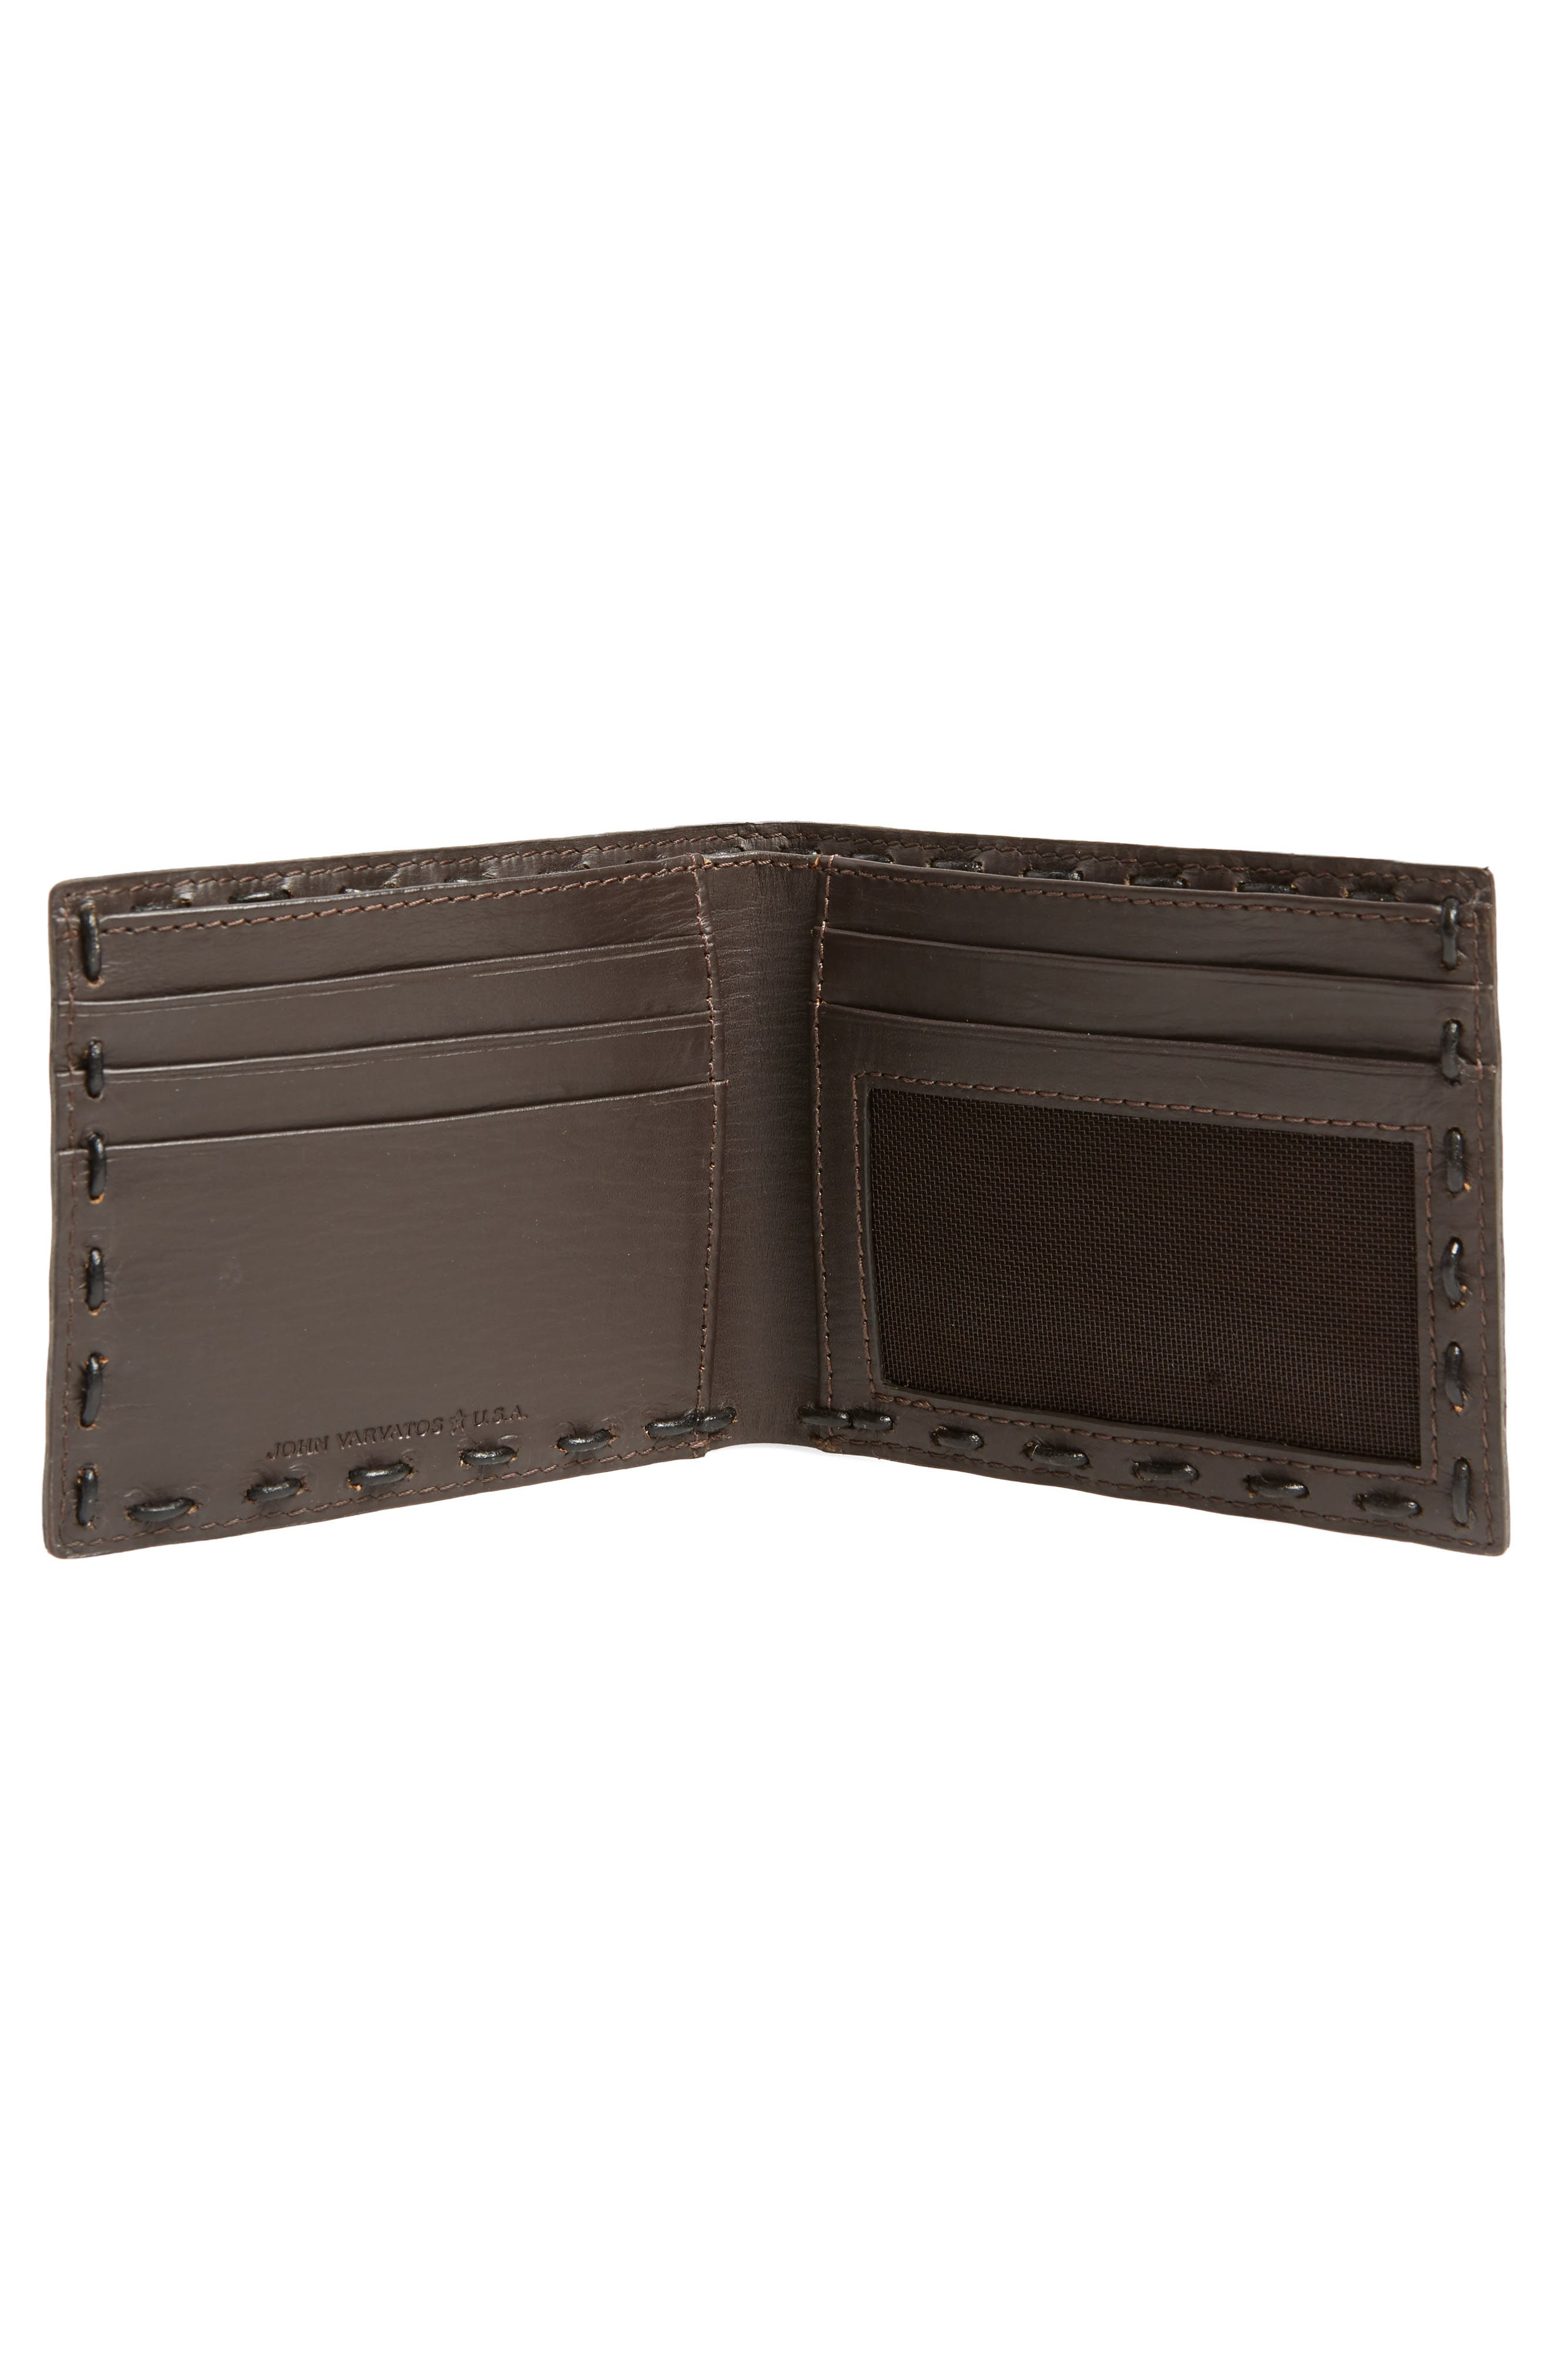 Marble Pickstitched Leather Wallet,                             Alternate thumbnail 2, color,                             Distressed Brown